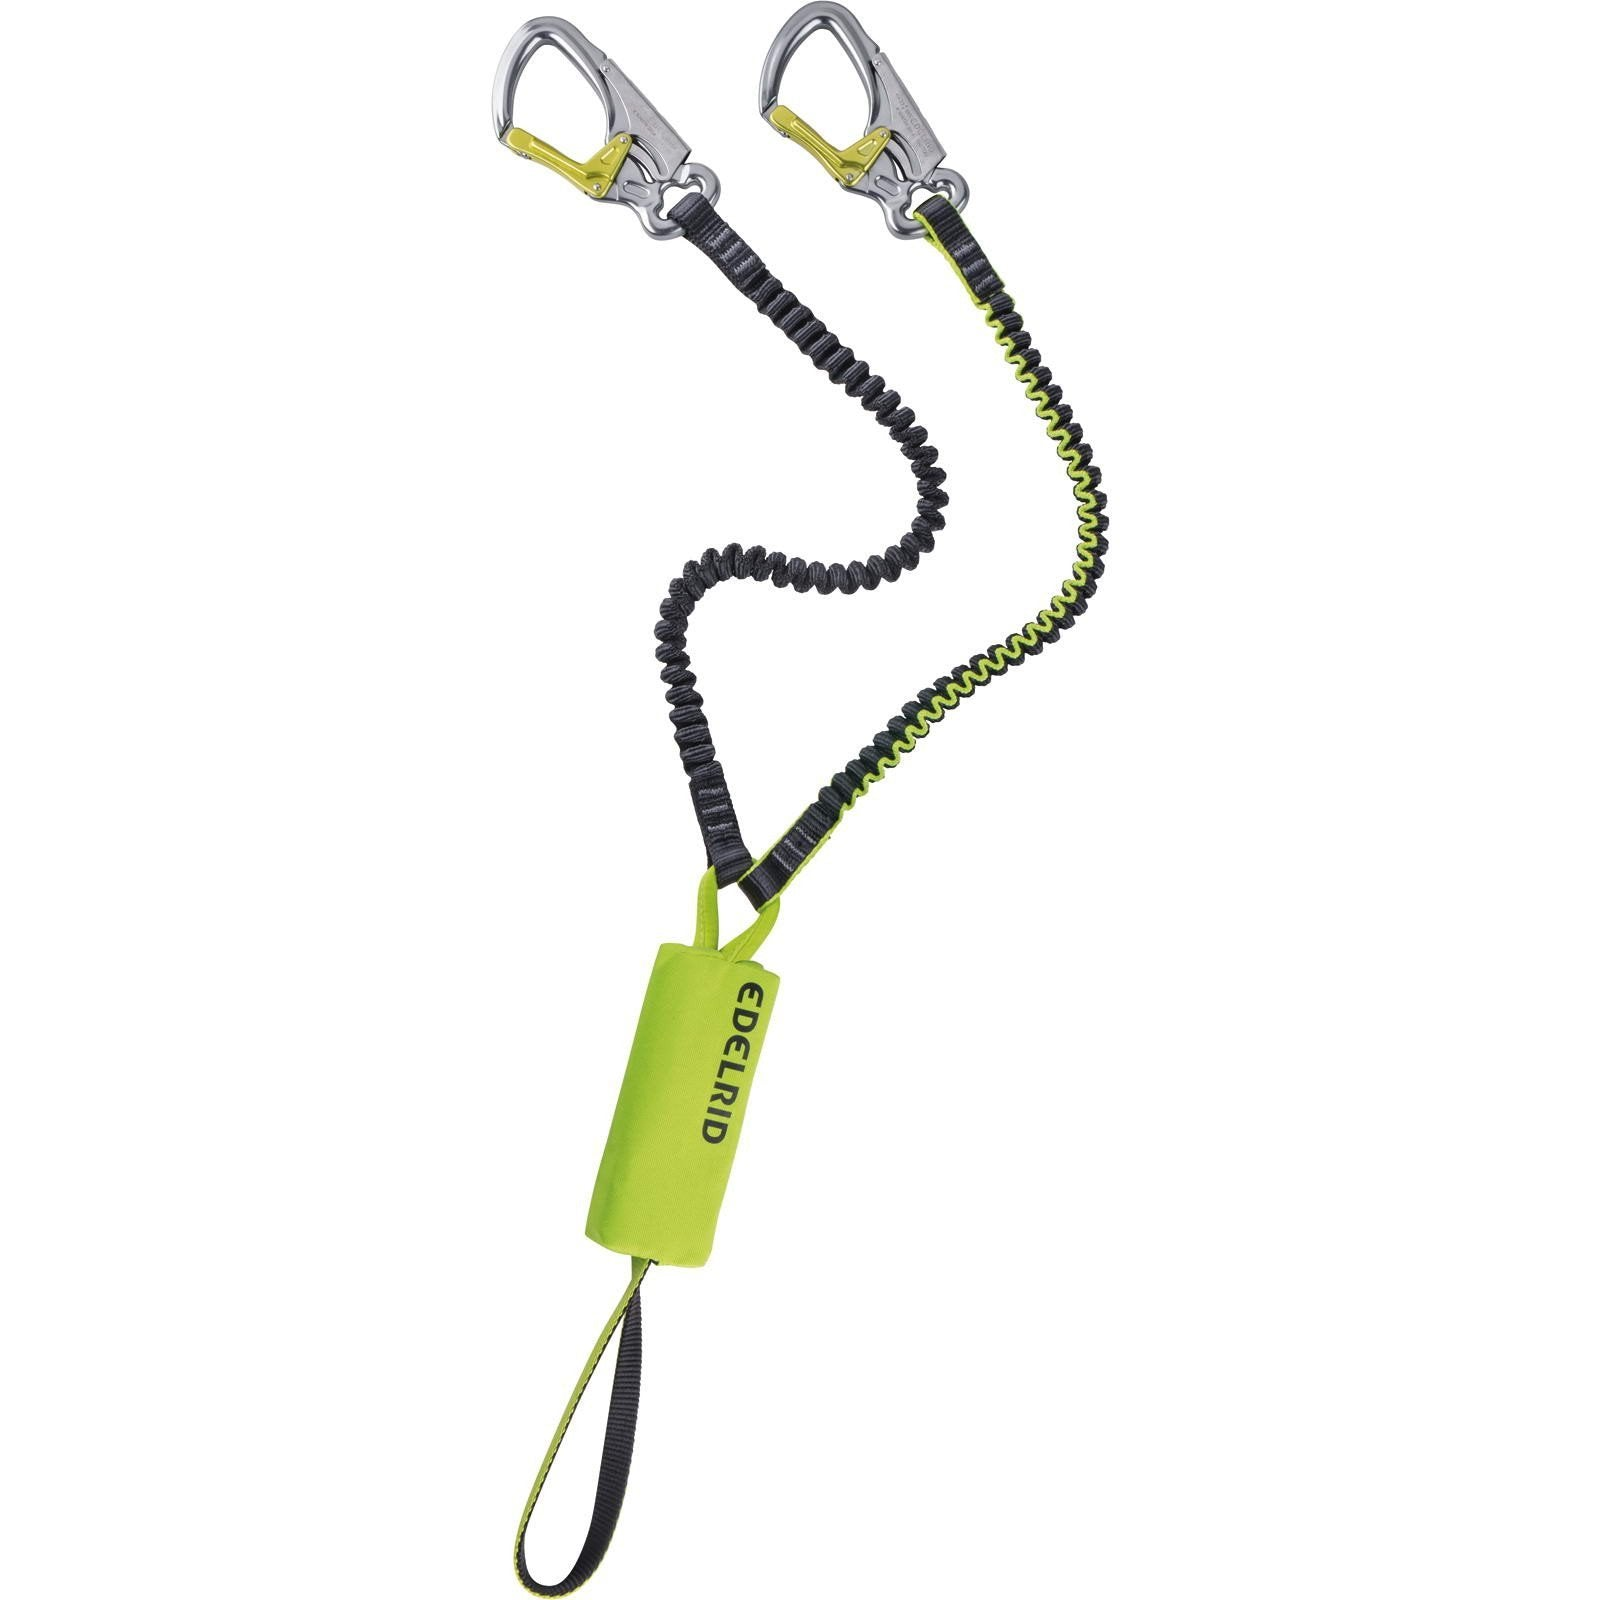 Edelrid Cable Kit Lite 5.0 via ferrata kit in green with silver carabiners